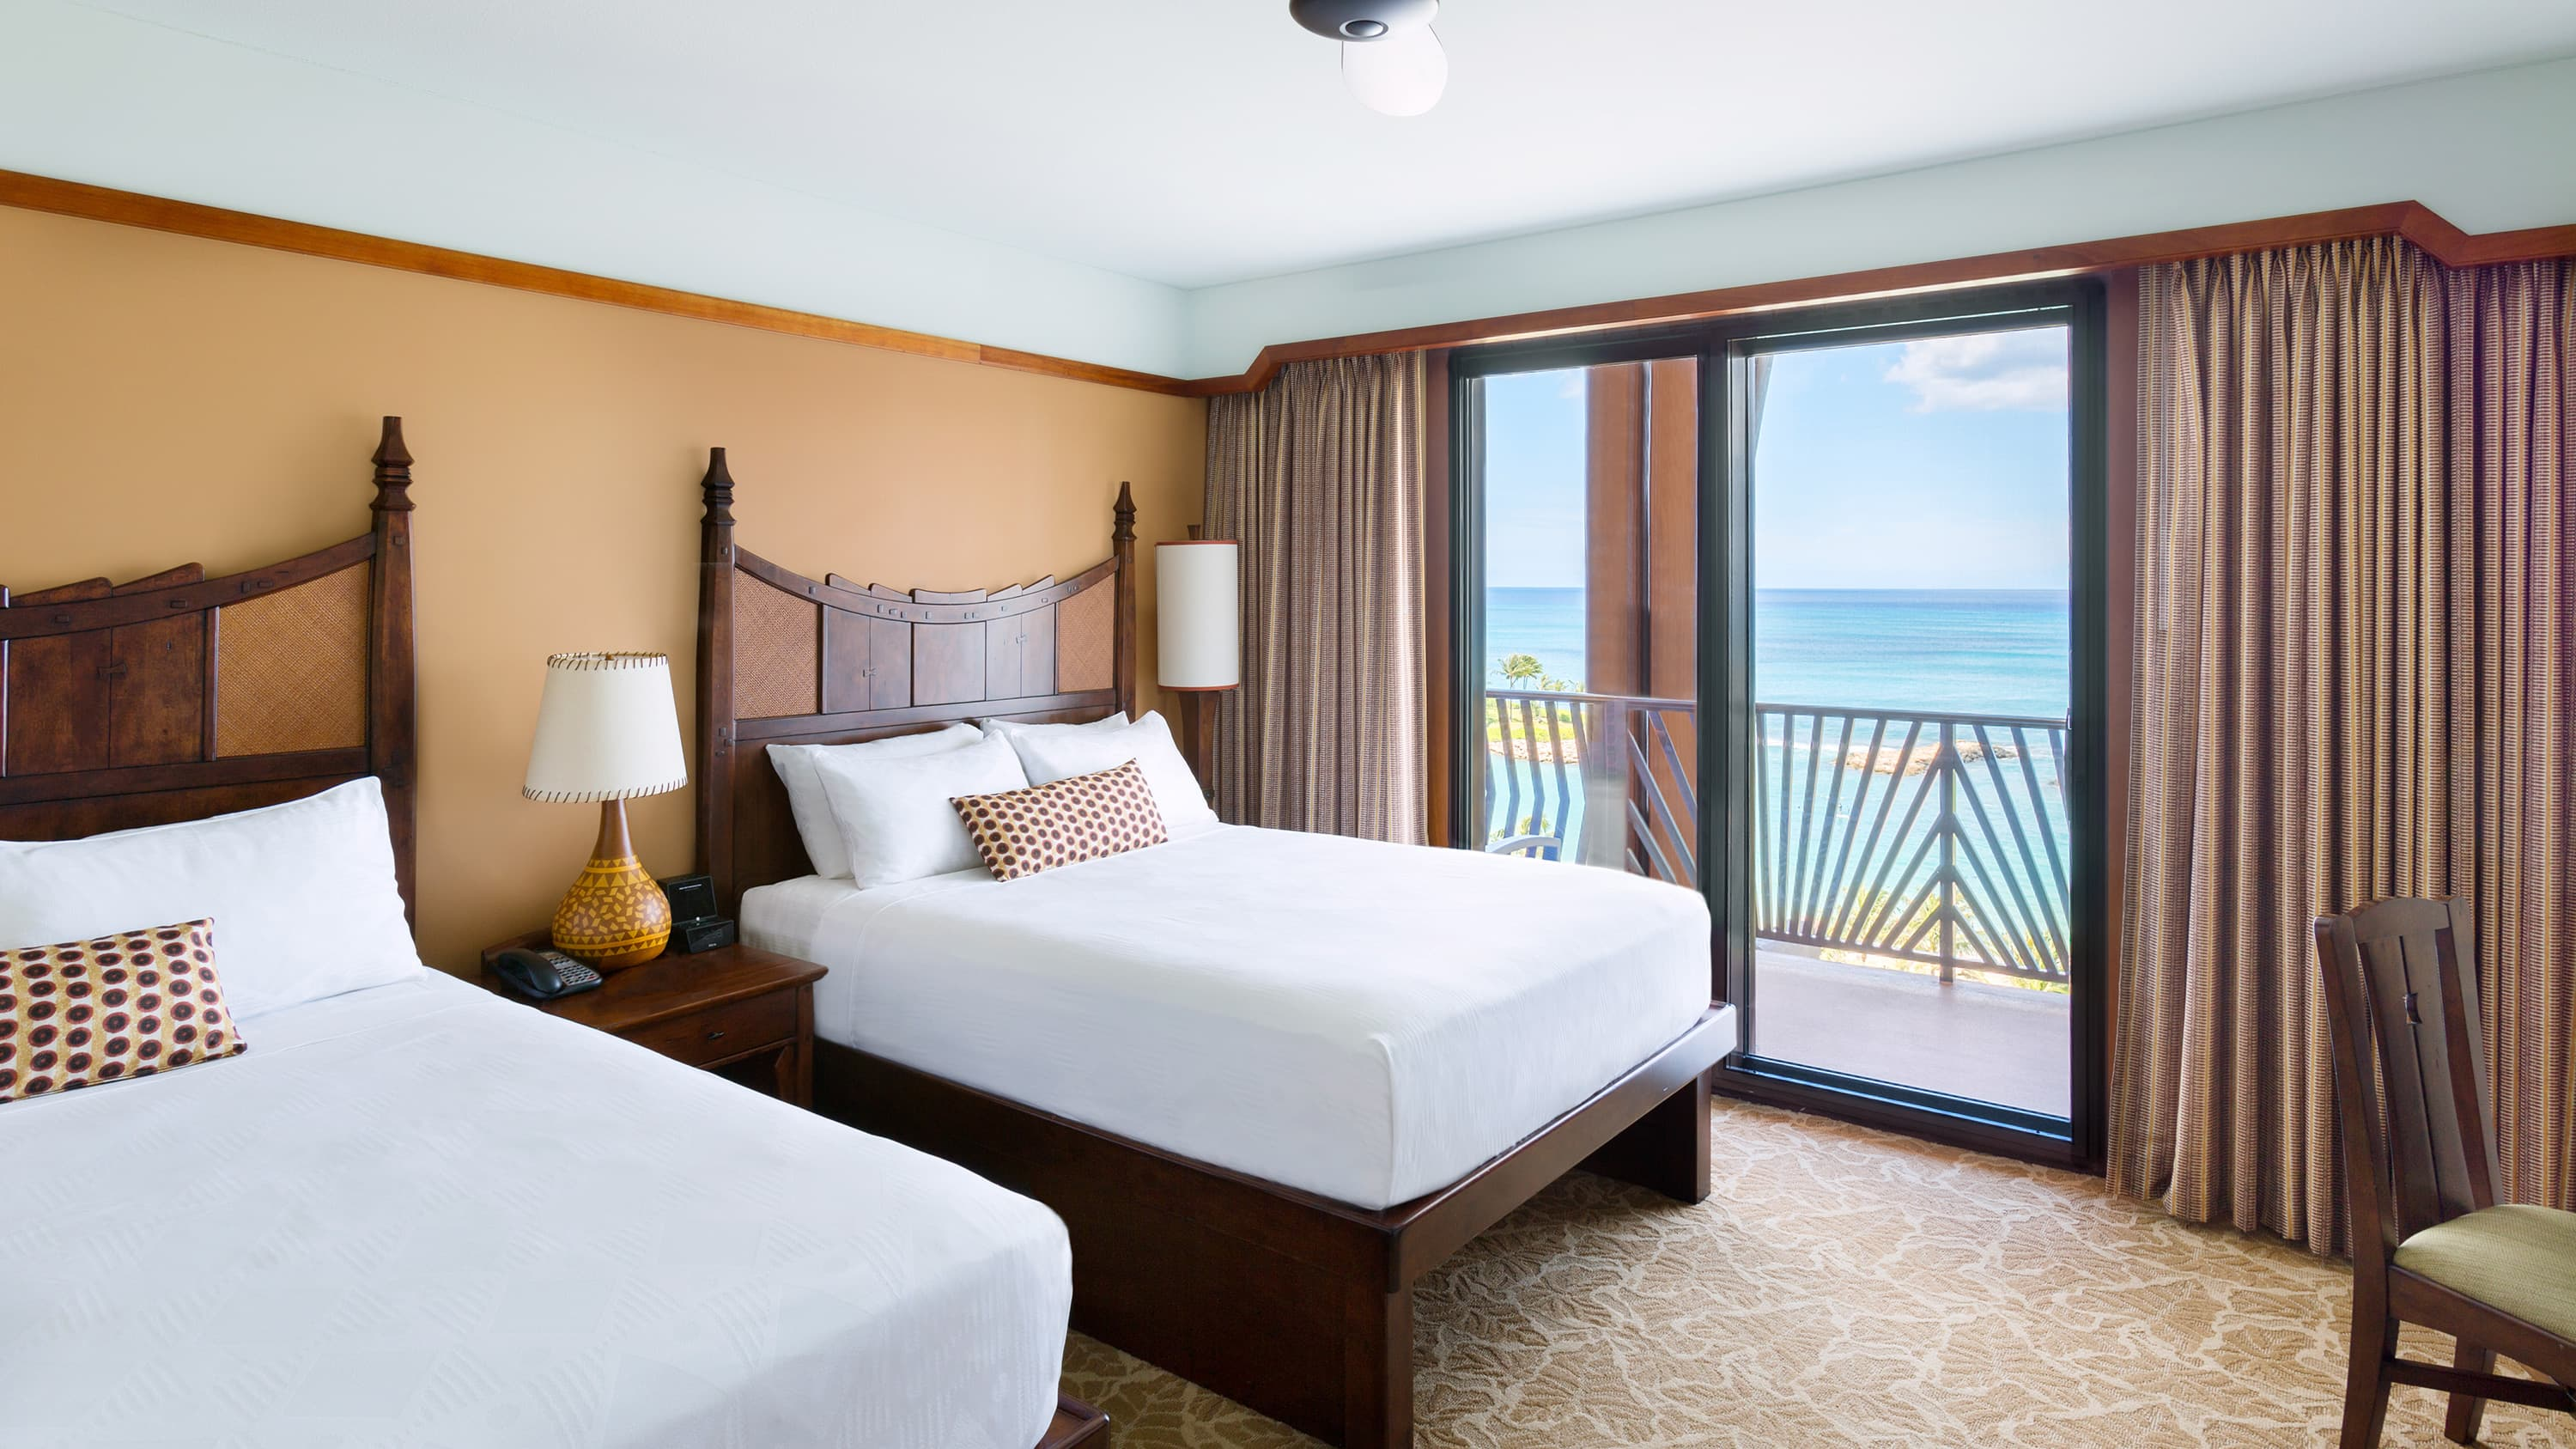 A room with 2 beds, 2 runners, a chair, curtains and balcony access